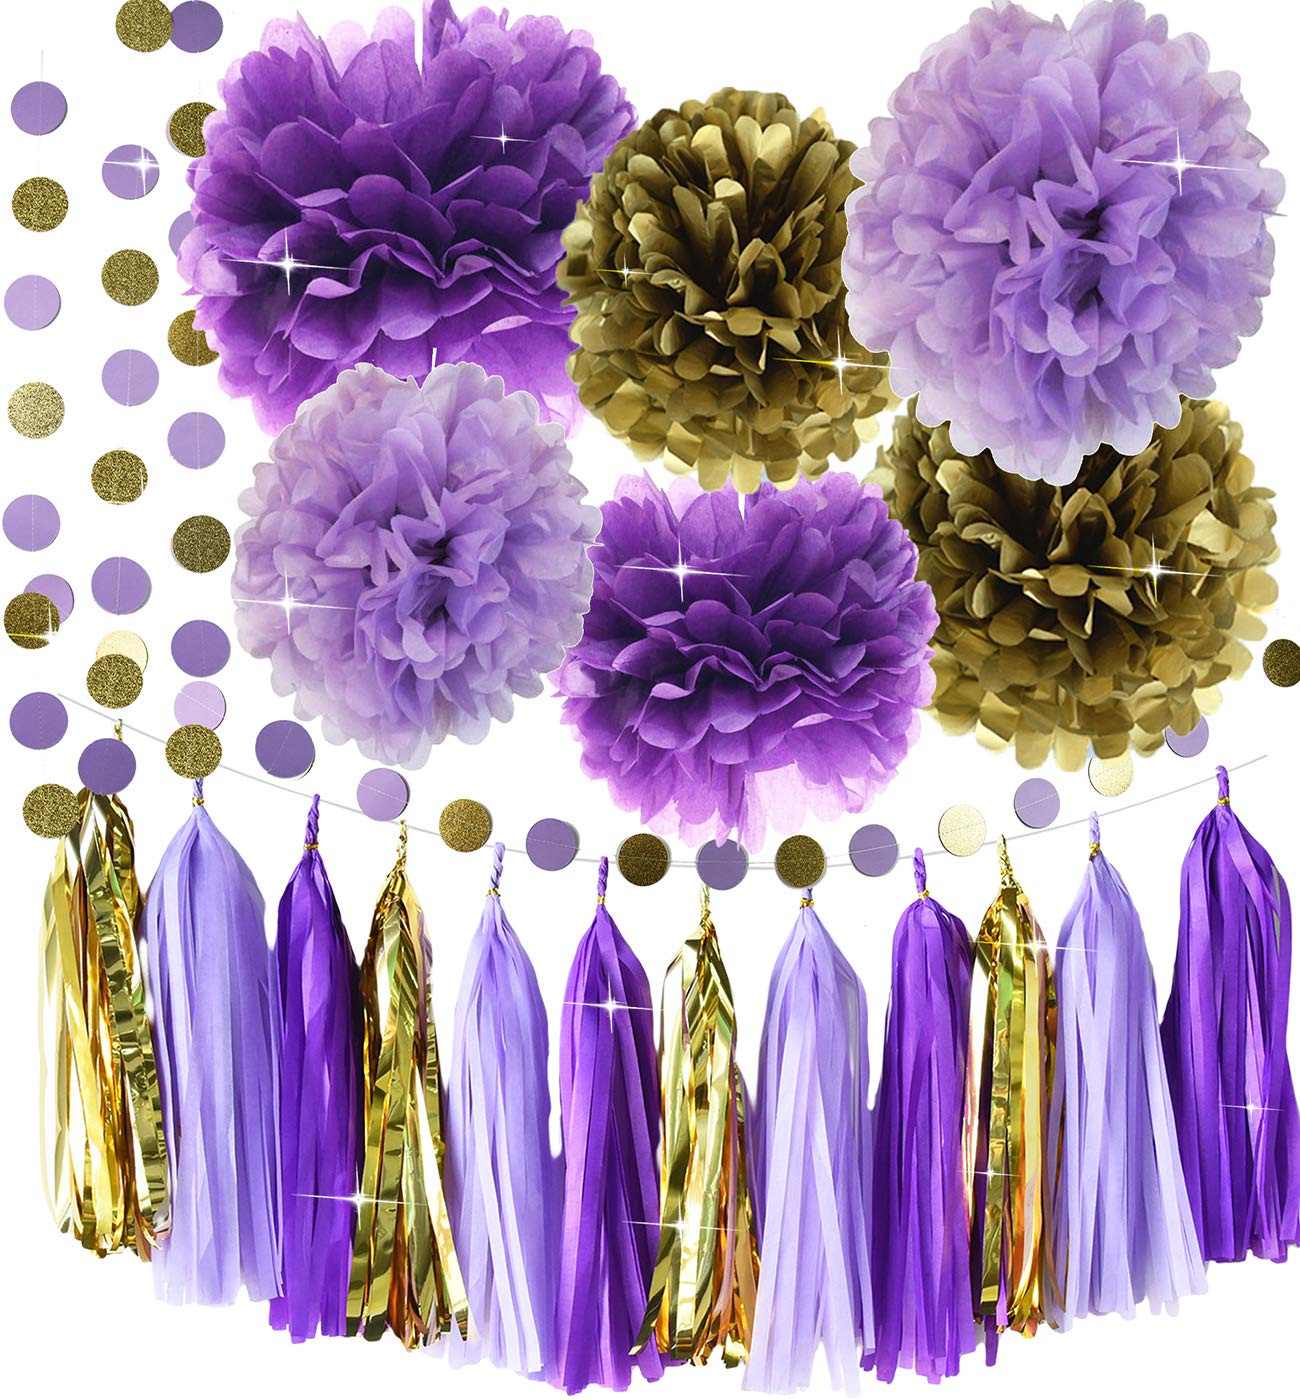 Qian's Party Purple Lavender Glitter Gold Baby Shower Tissue Paper Pom Pom Paper Tassel Garland First Birthday Decorations Purple Bridal Shower Decorations Snow or Sea Theme Party Decor by Qian's Party